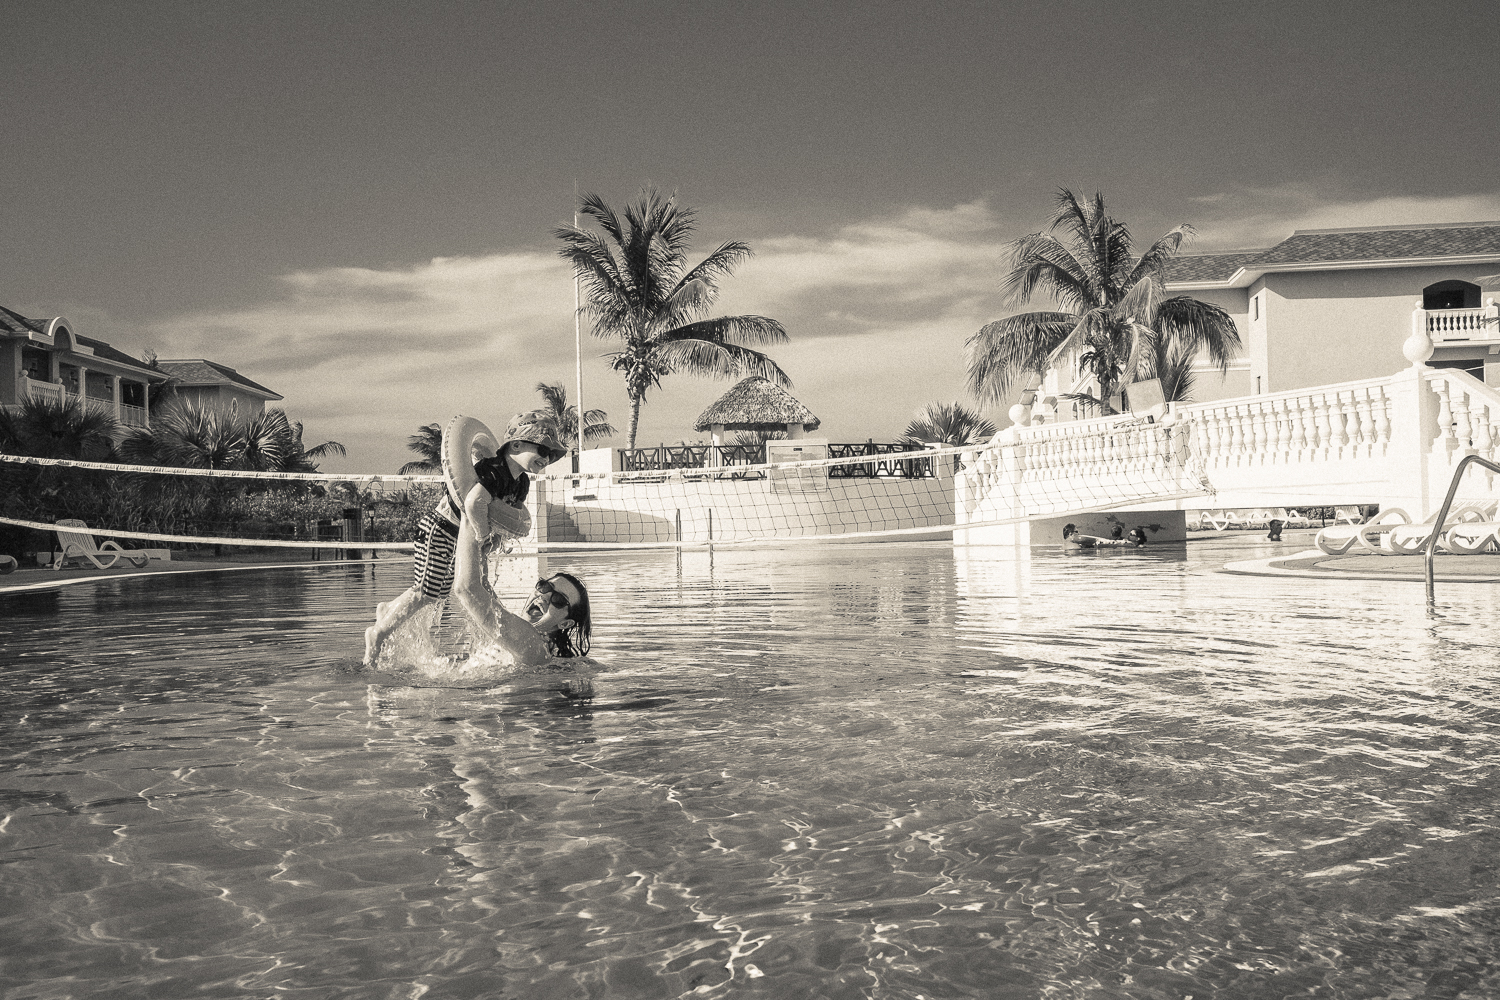 Mother and son swimming in Varadero, Cuba 2015.